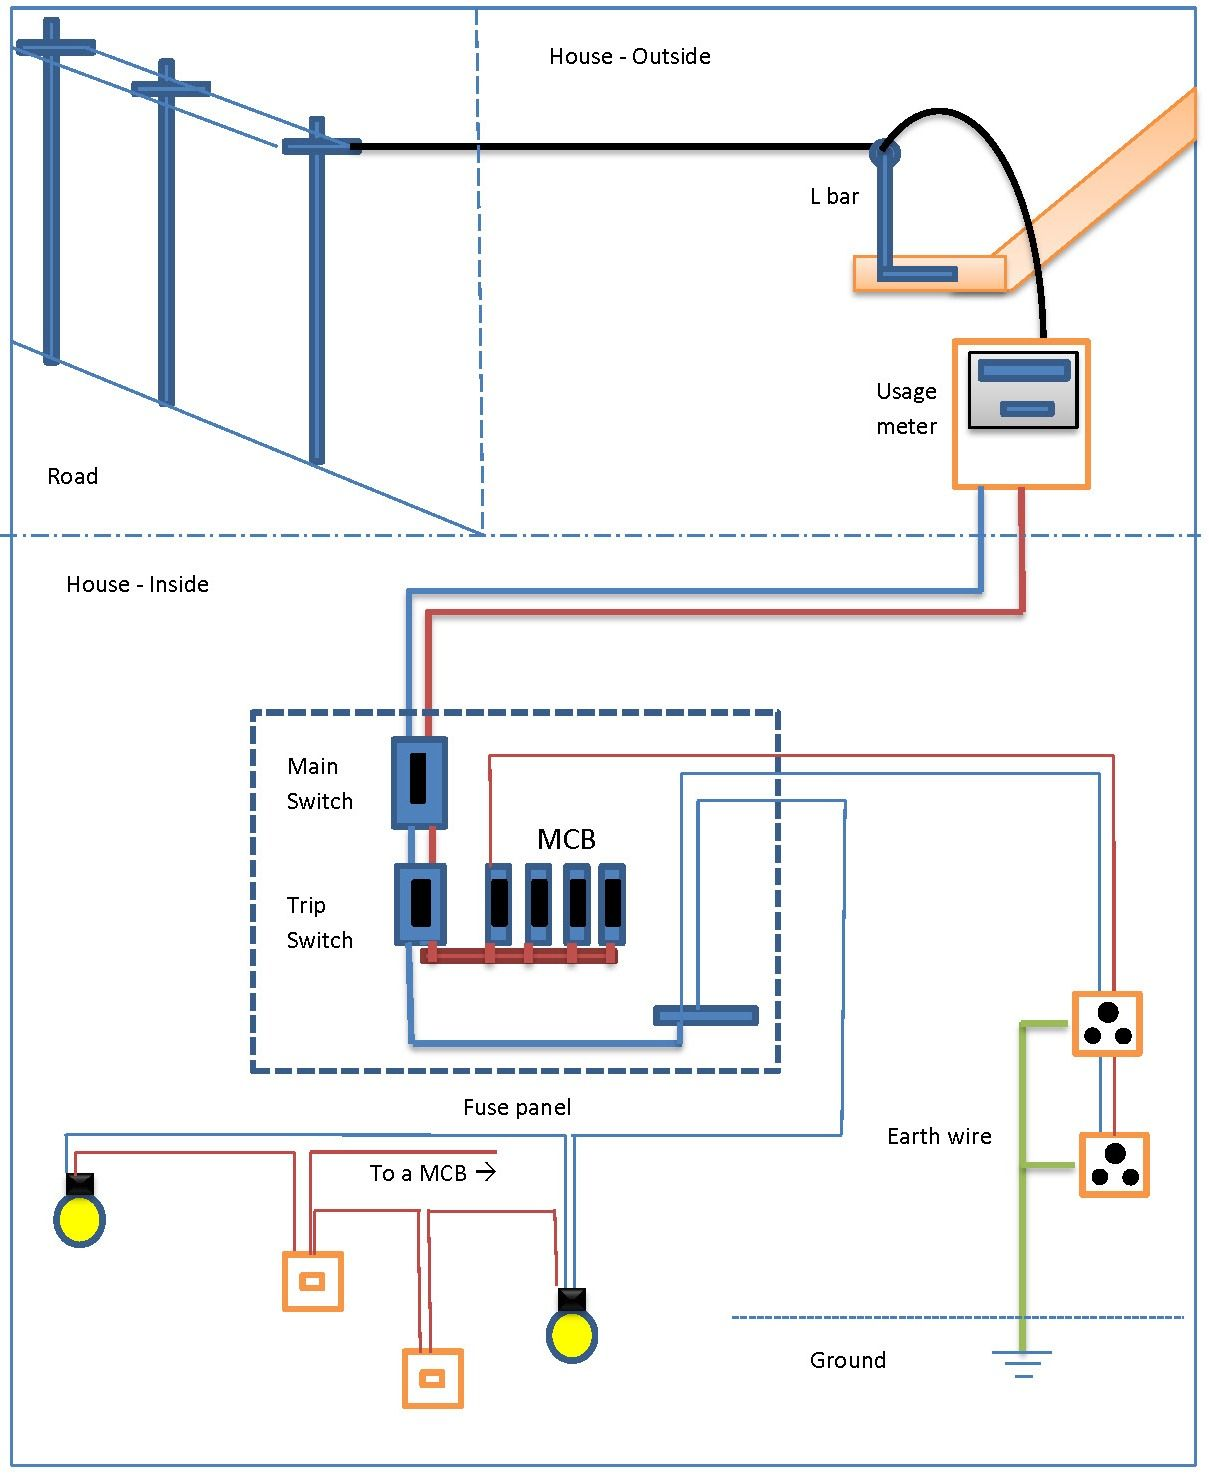 Senasum39s blog House Wiring Diagram Sri Lanka House